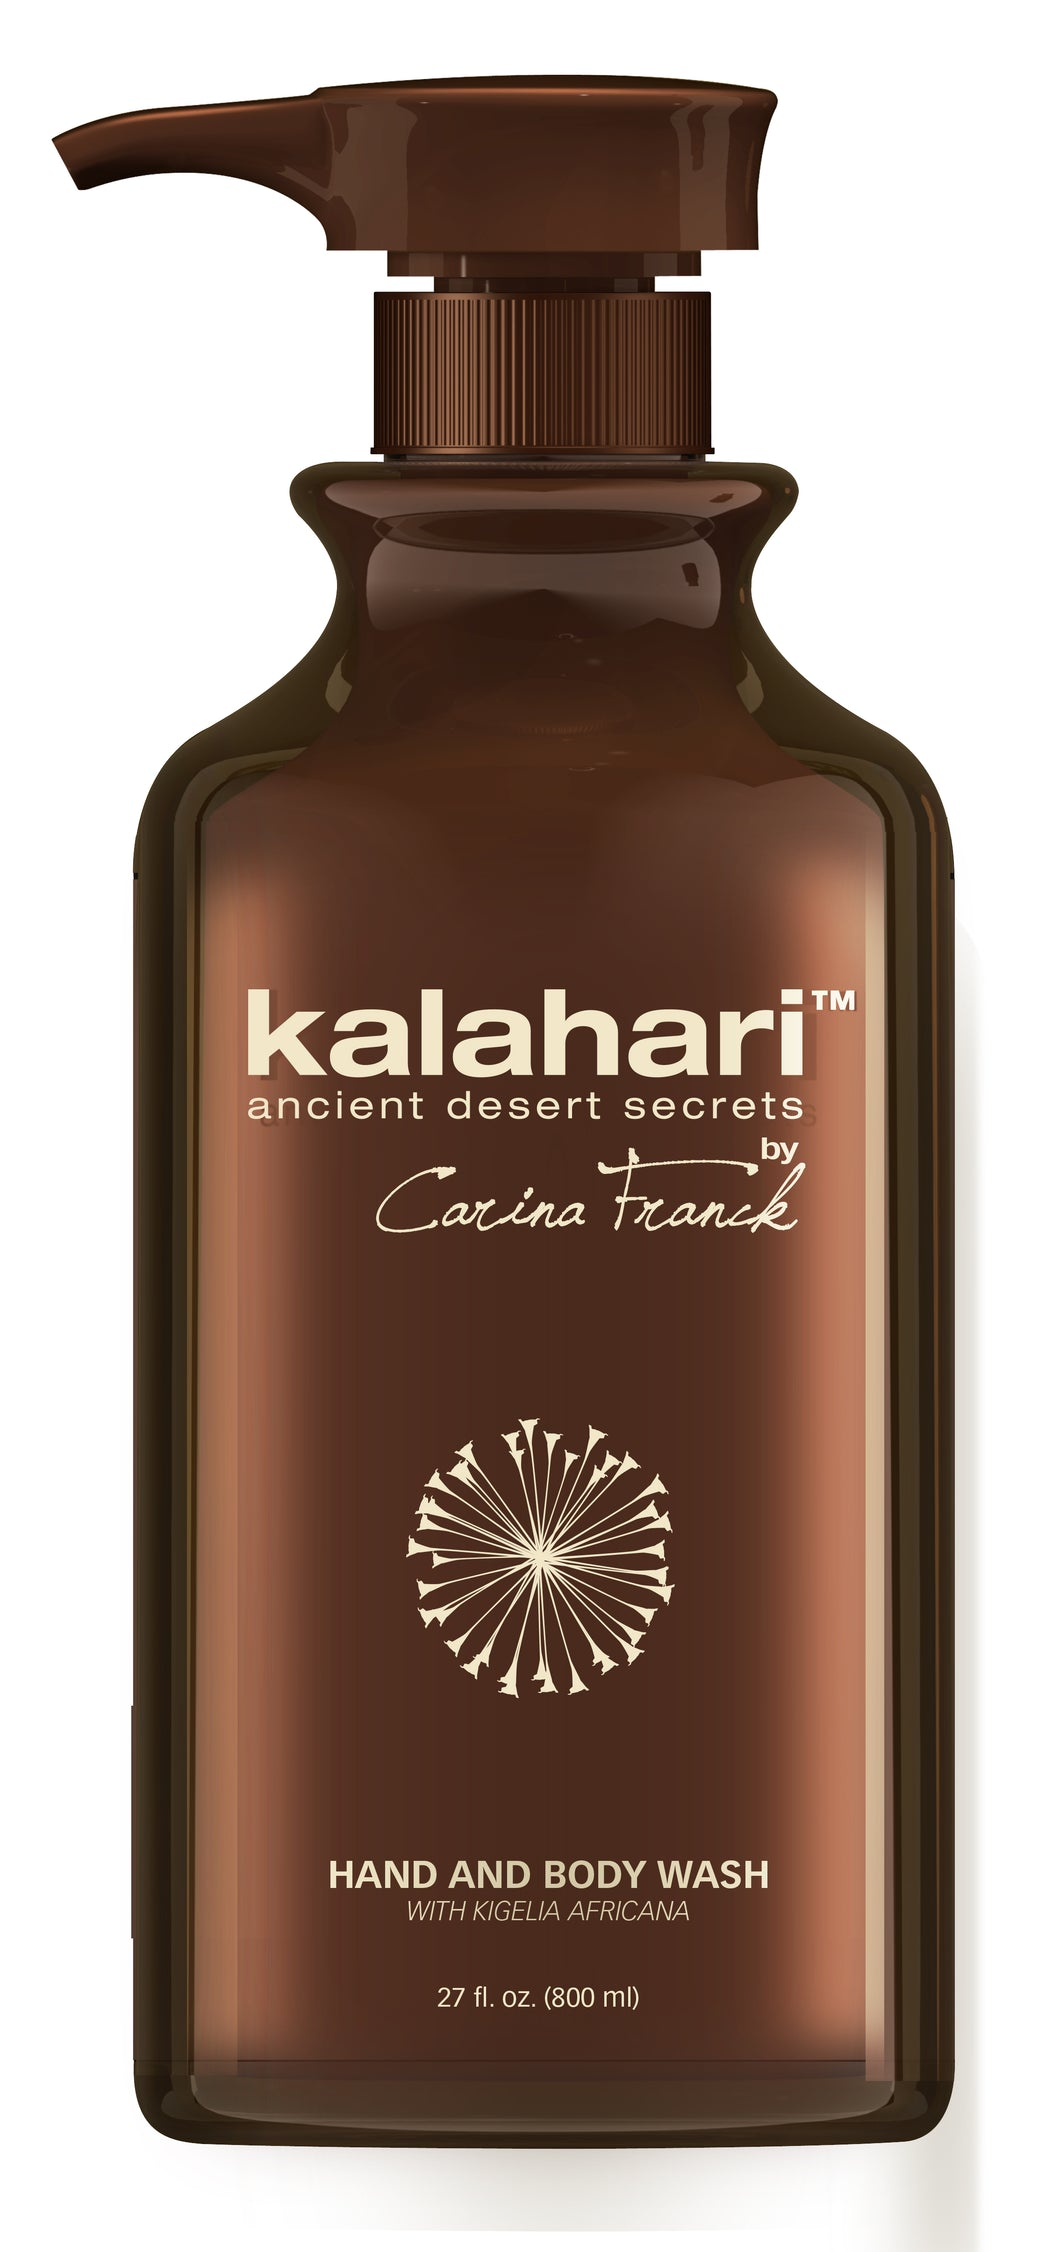 Kalahari Hand and Body Wash